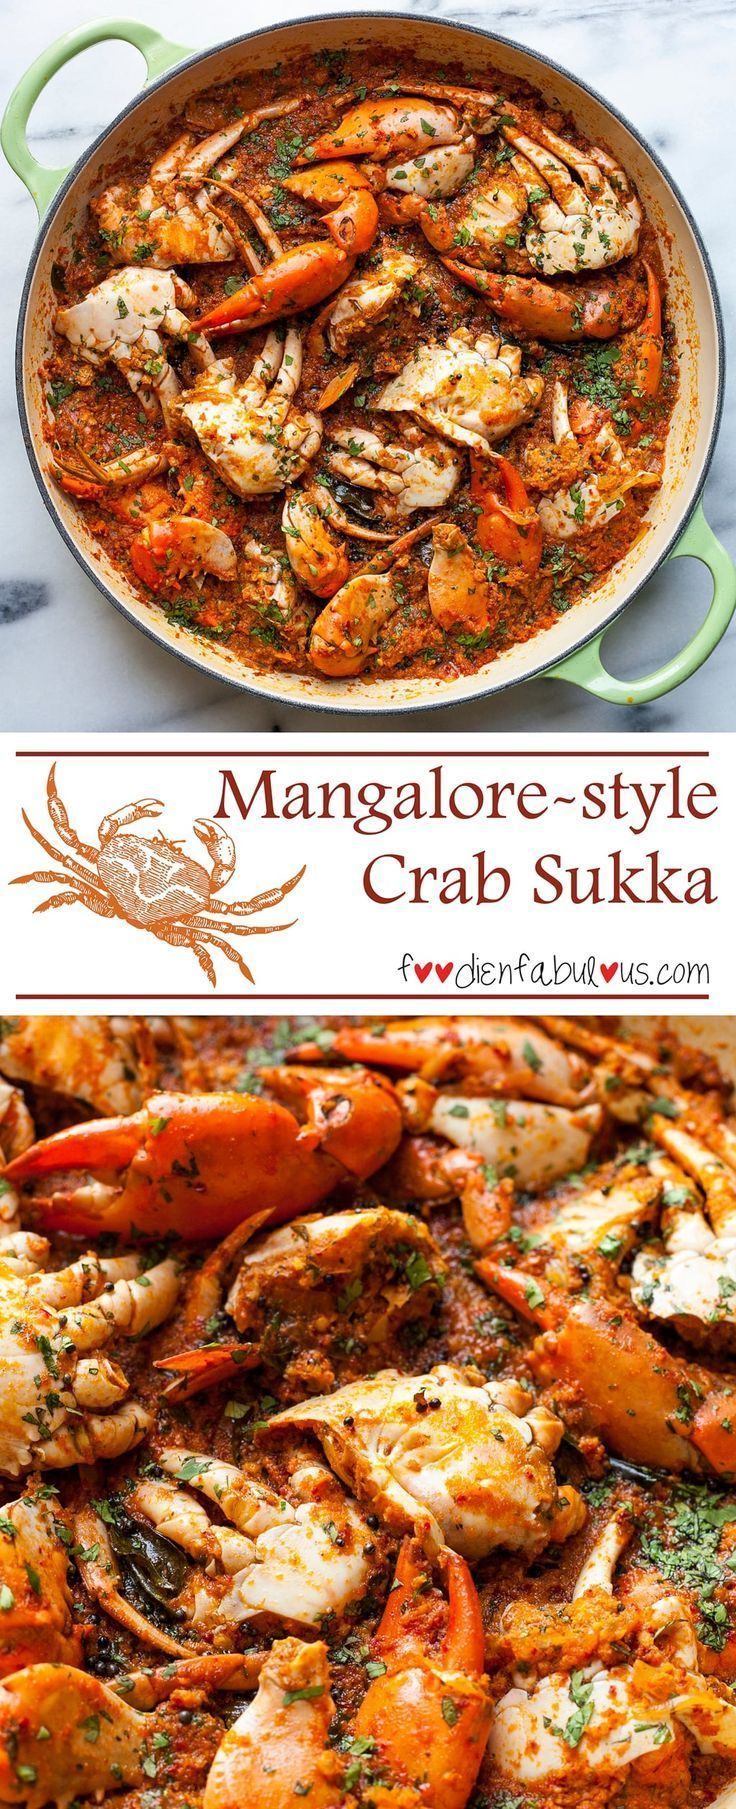 Next time you have live crabs at the market, bring home and make this crabs specialty from the coastal city of Mangalore. You will love the earthy flavours from blending whole spices with fresh coconut and a whole lot of crabs. Serve with roti or rice for the perfect seafood meal. #seafoodrecipes #DeliciousSeafoodMeals